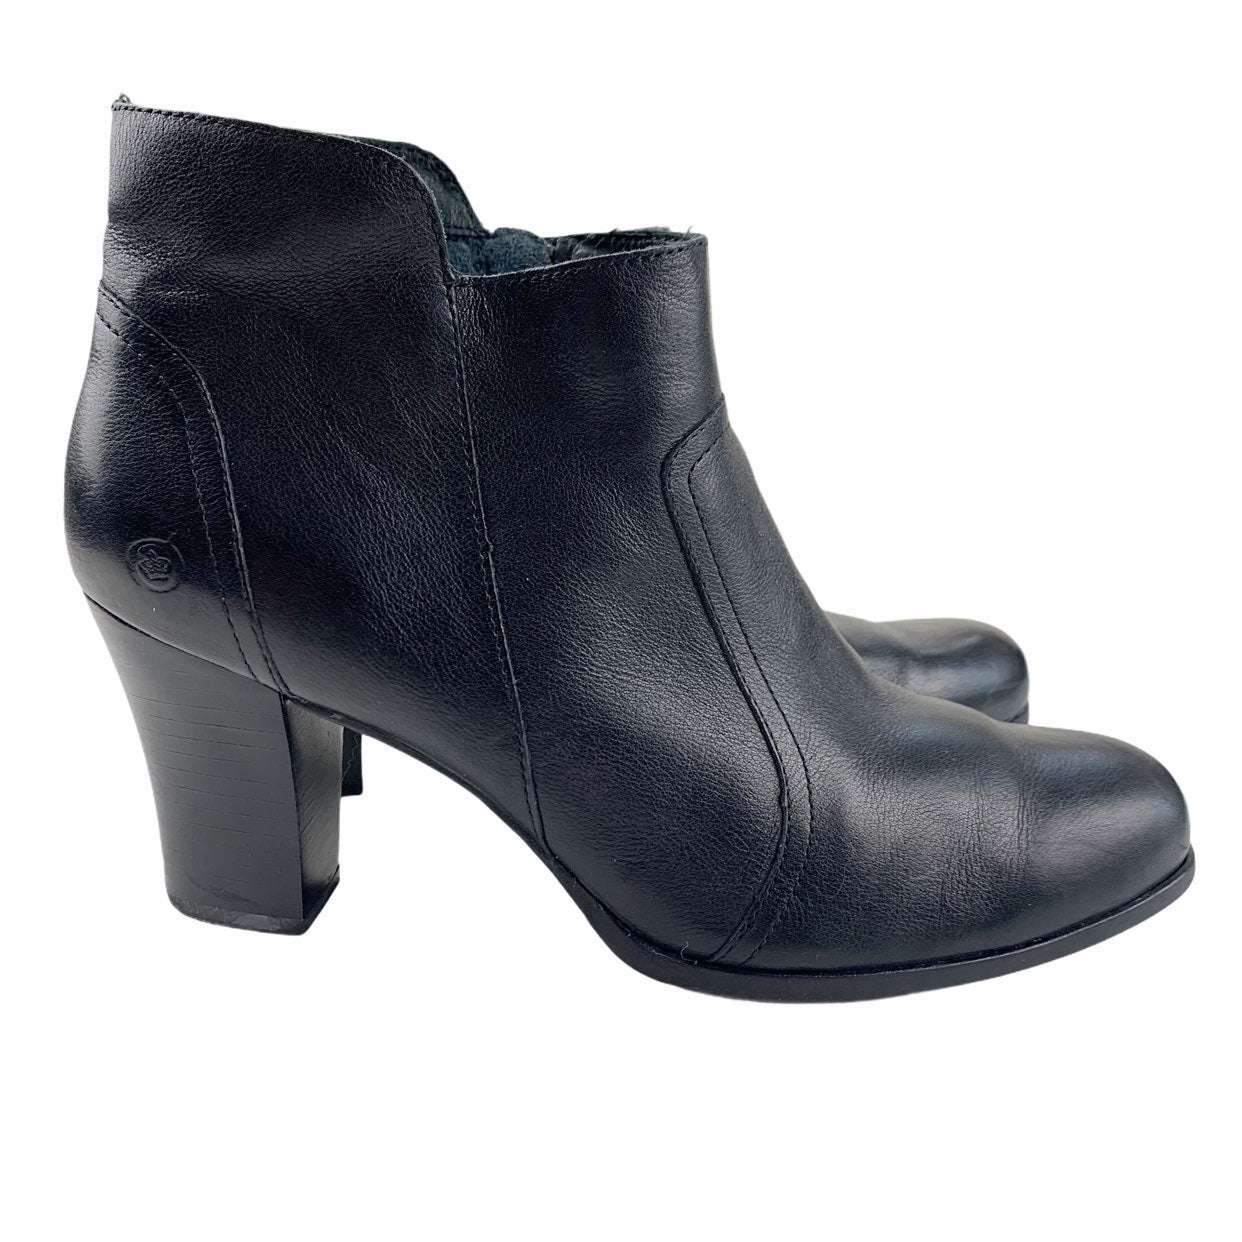 Born Black Leather Claire Booties